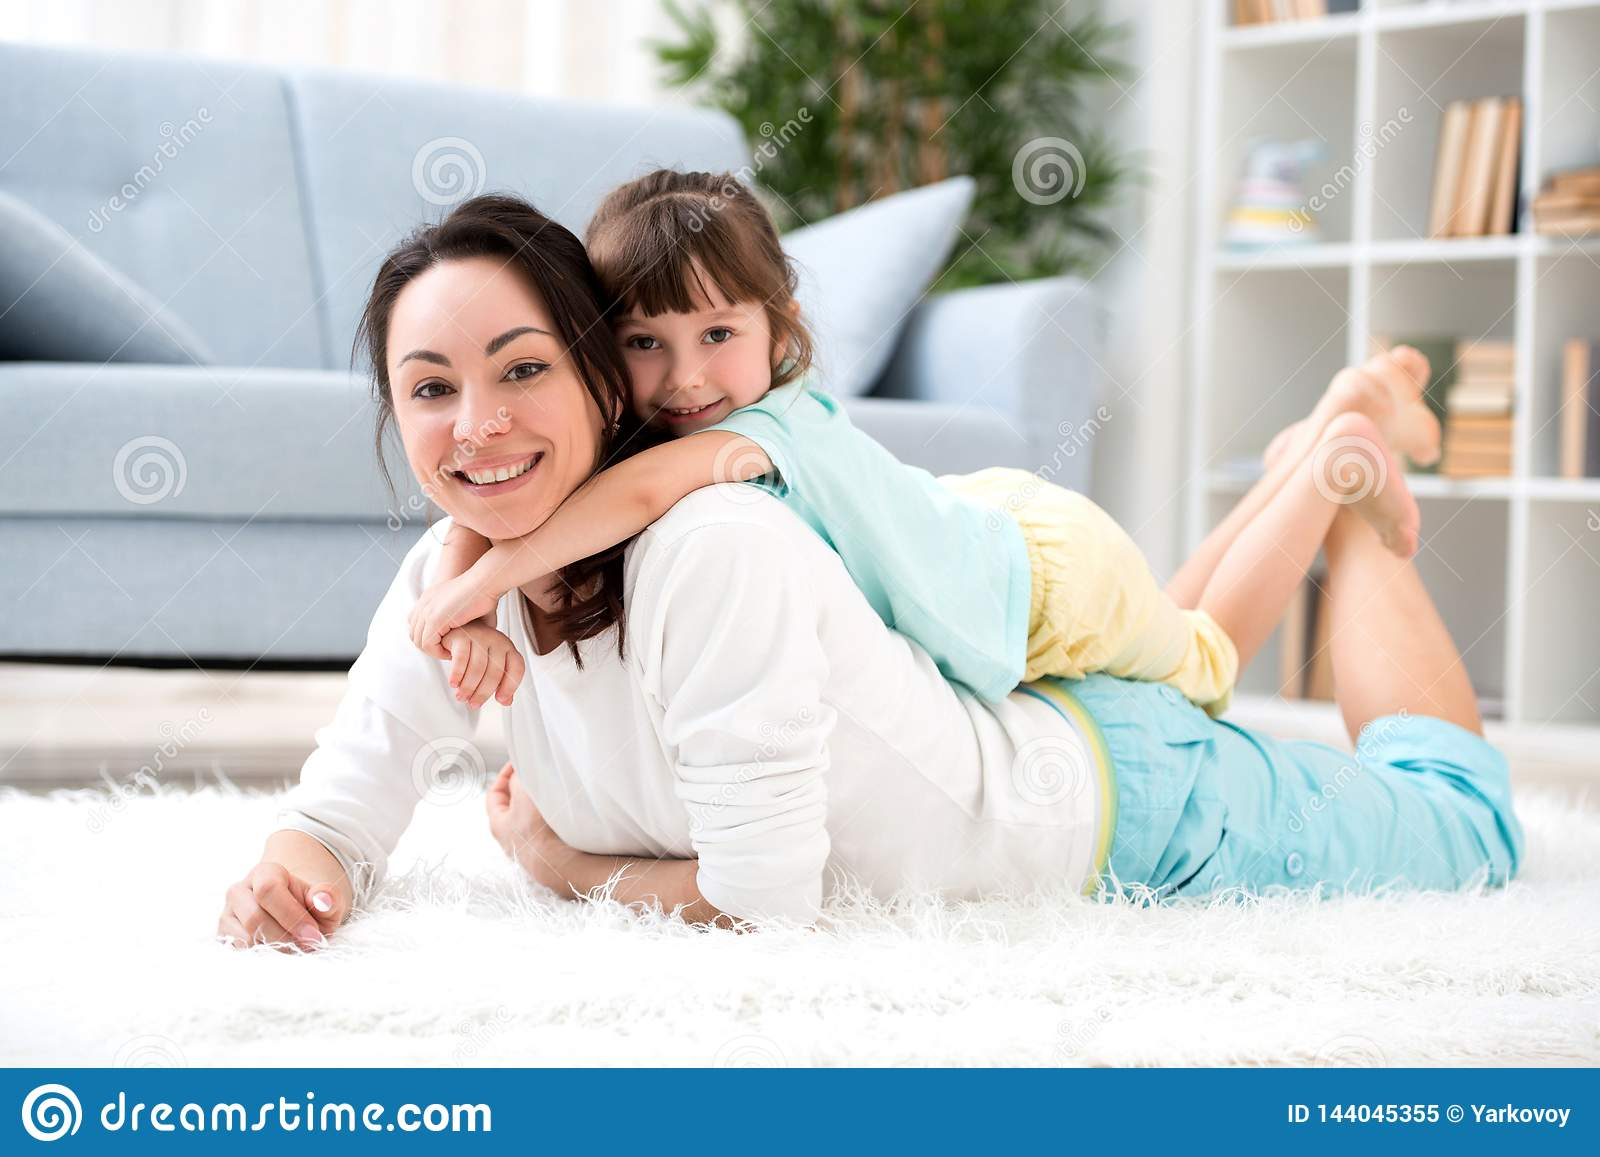 Happy loving family. Beautiful mother and little daughter have fun, play in the room on the floor, hug, smile and fool around